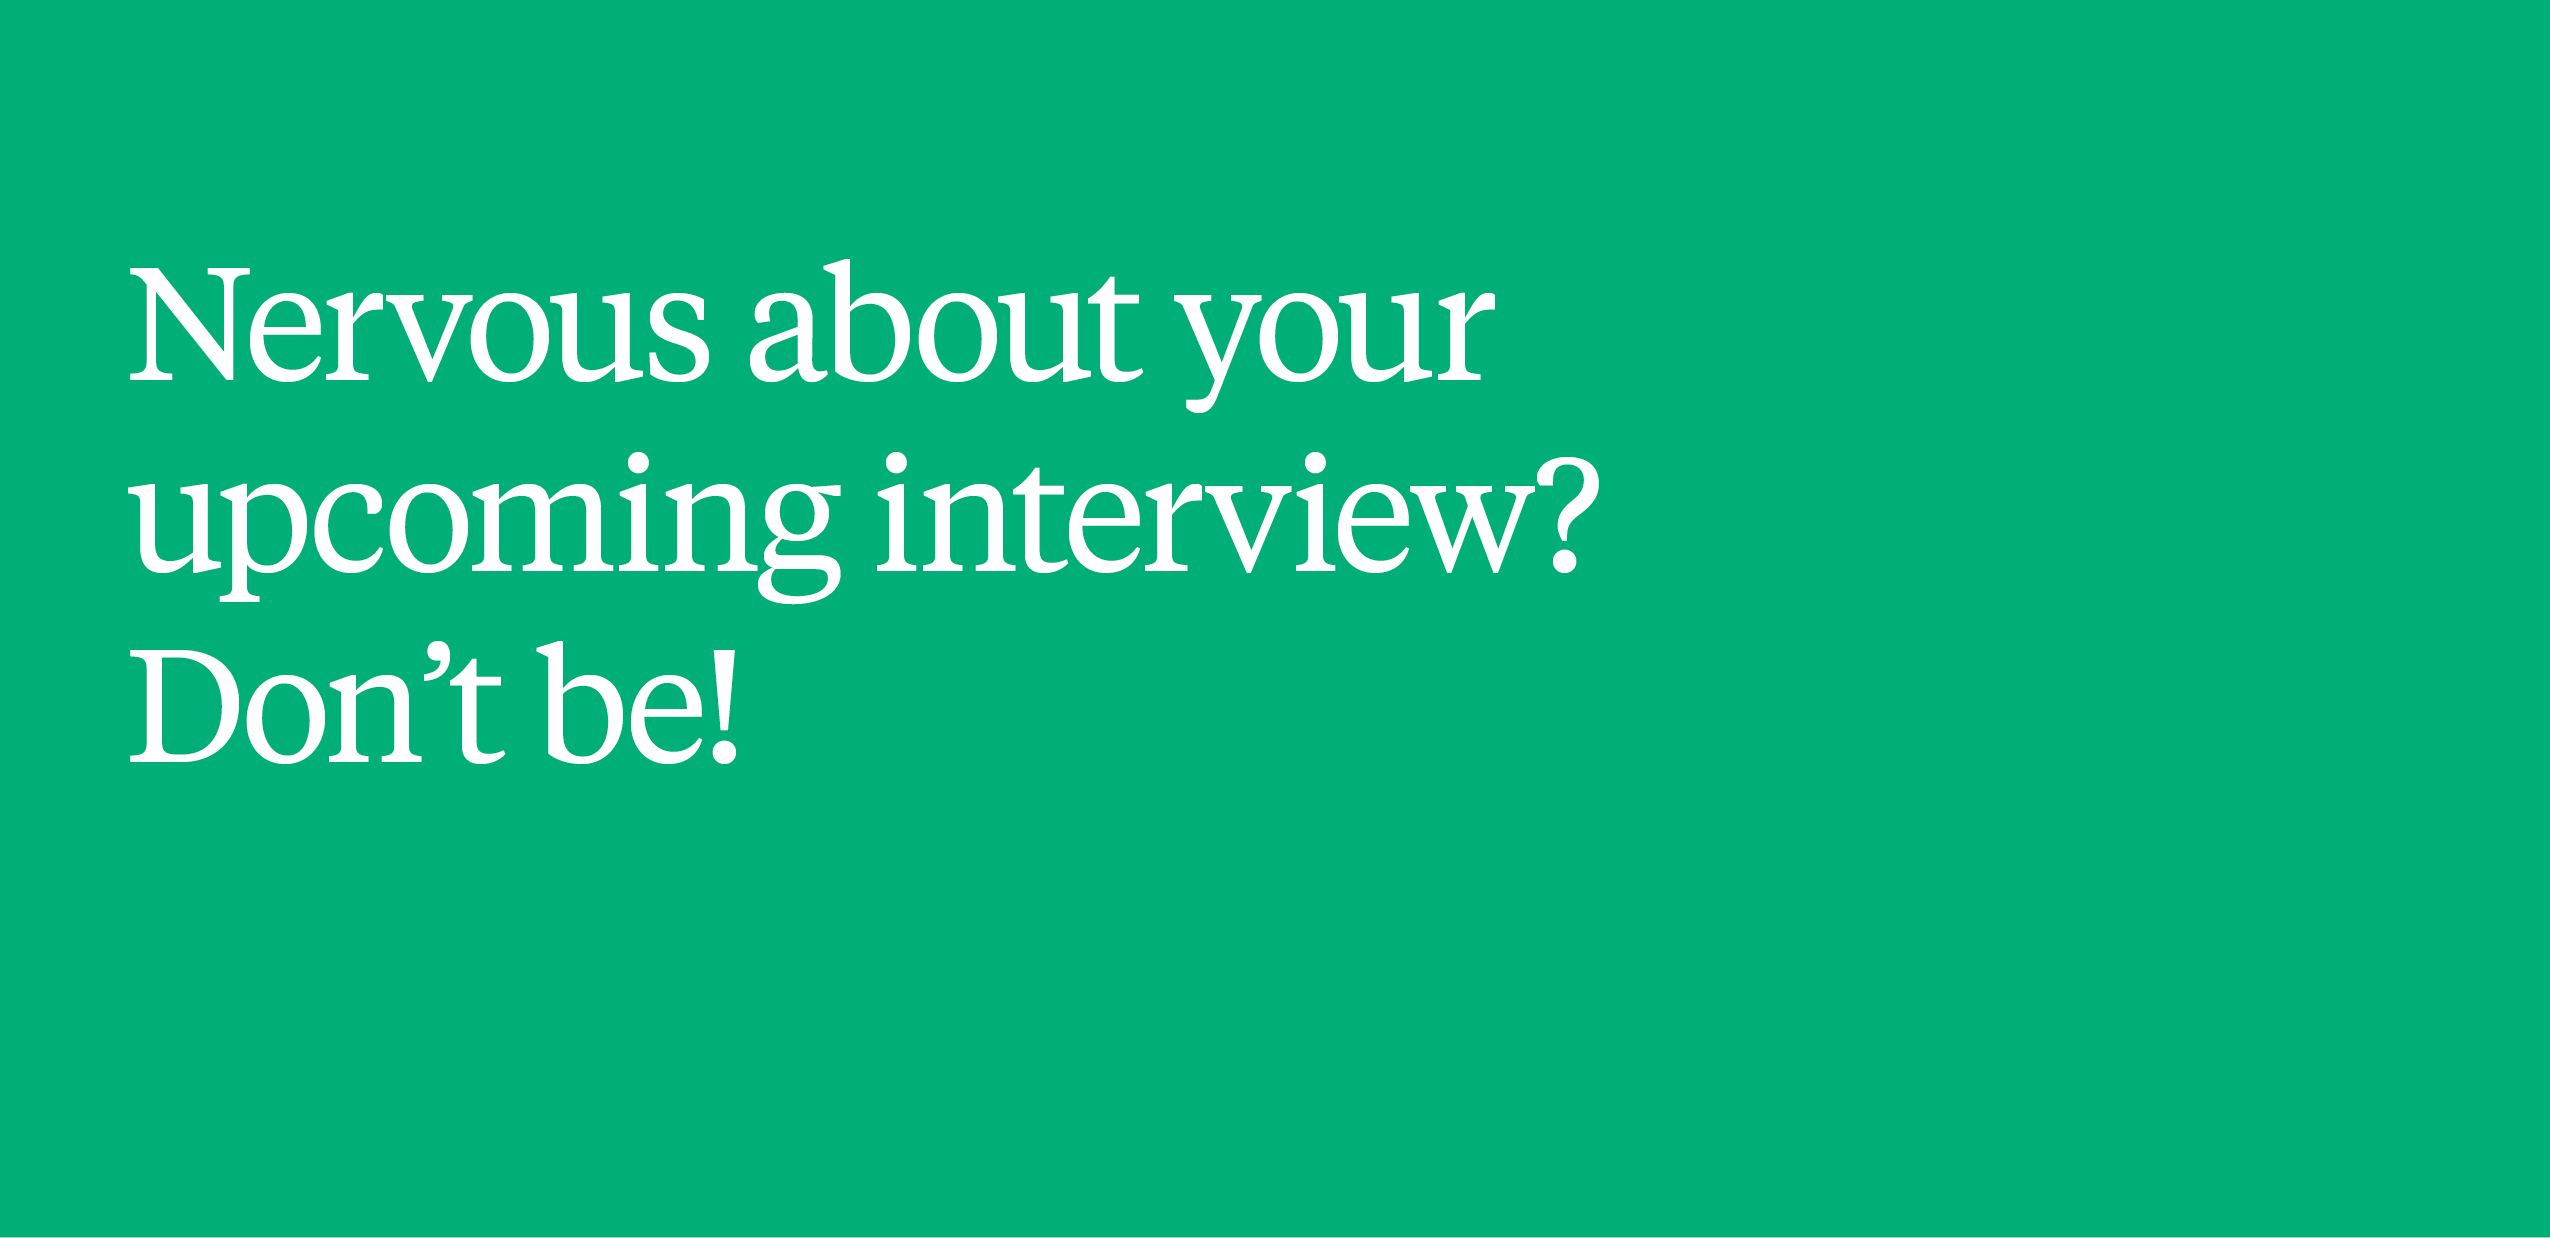 Your upcoming interview